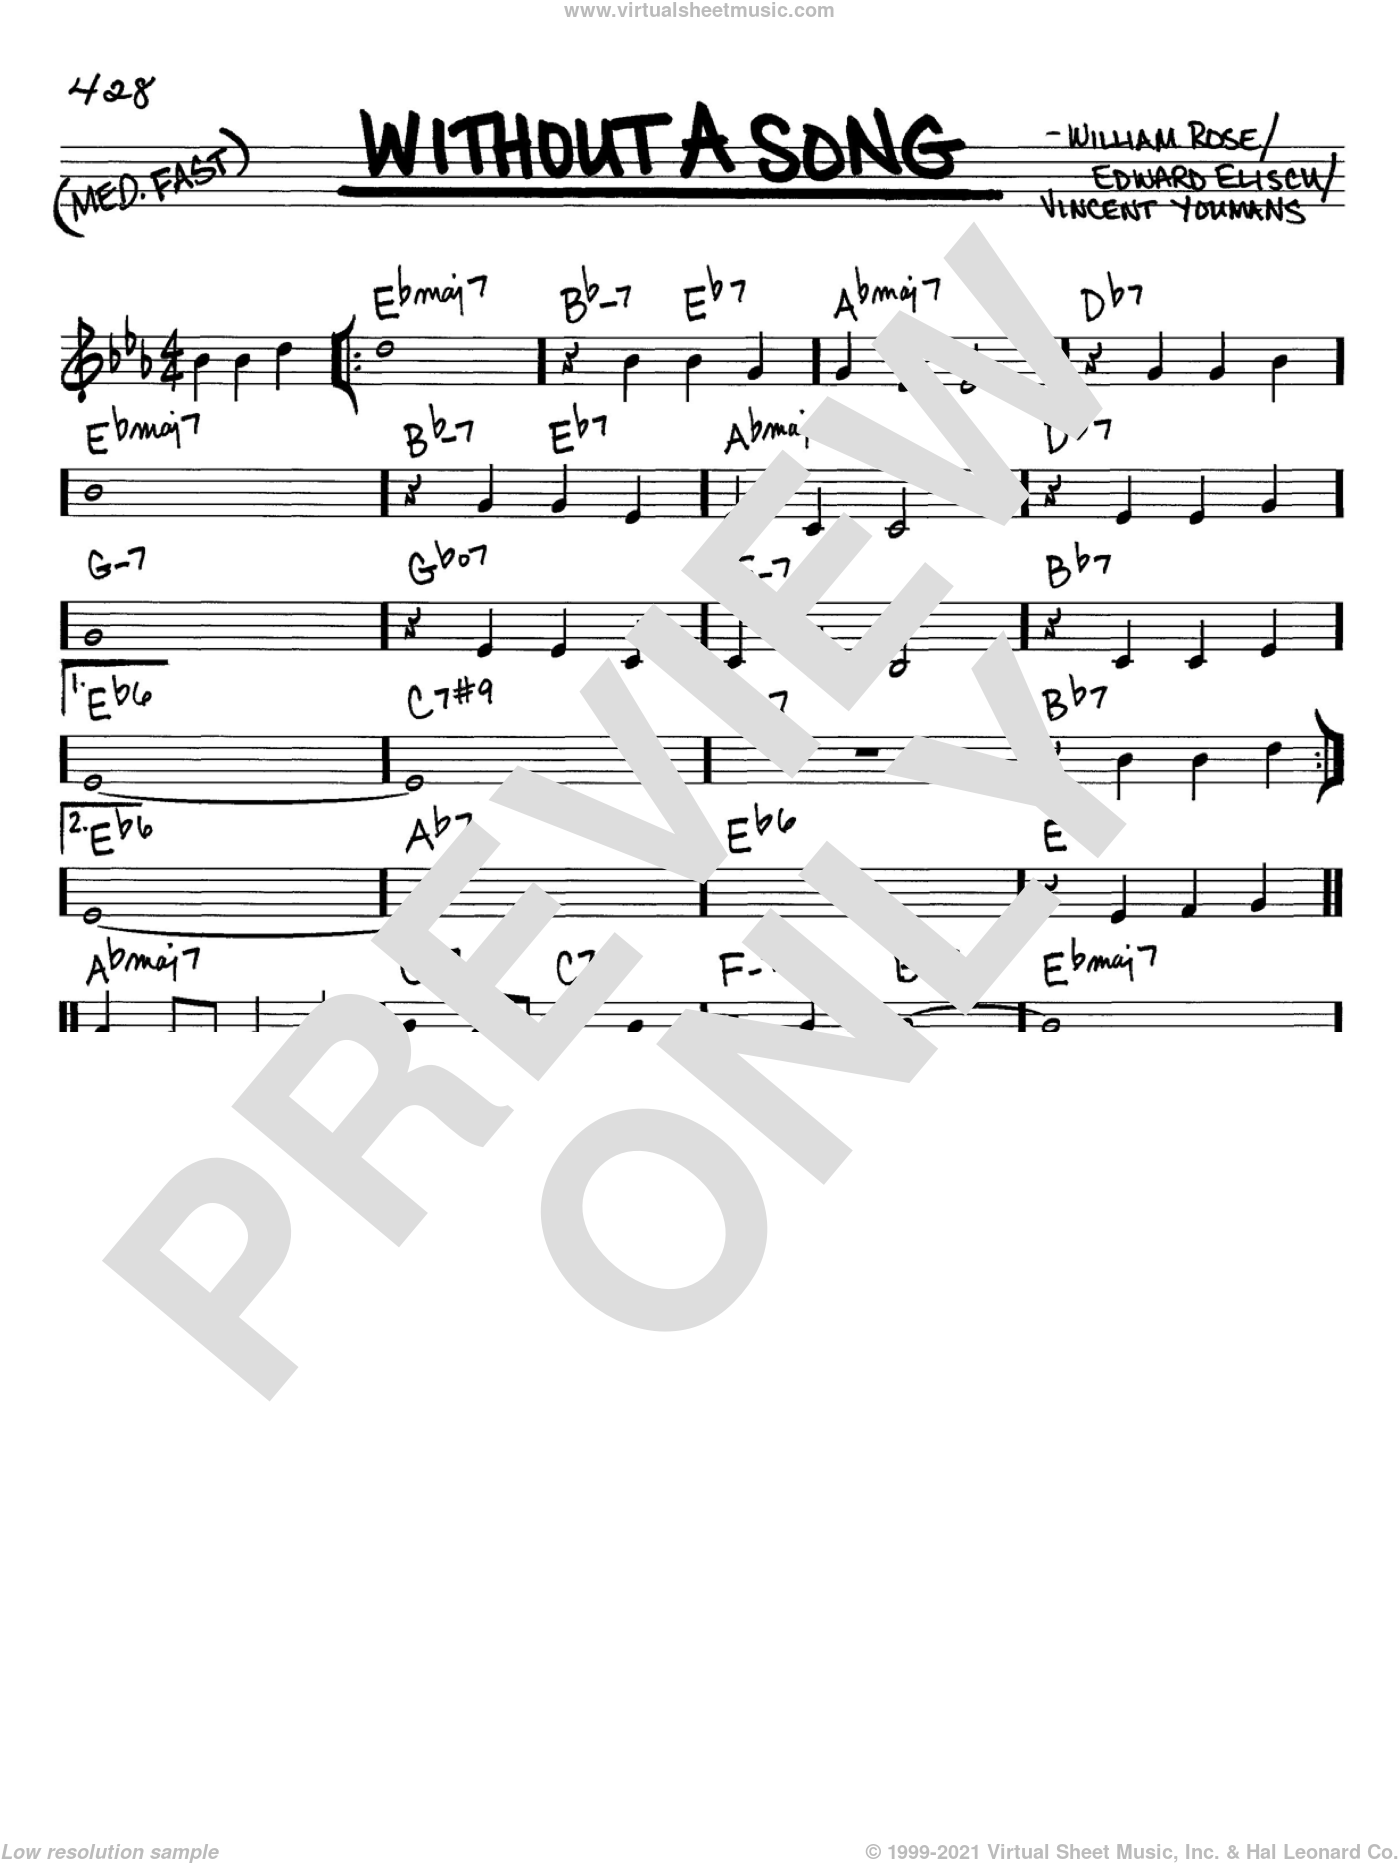 Without A Song sheet music for voice and other instruments (C) by Willie Nelson, Edward Eliscu, Vincent Youmans and William Rose